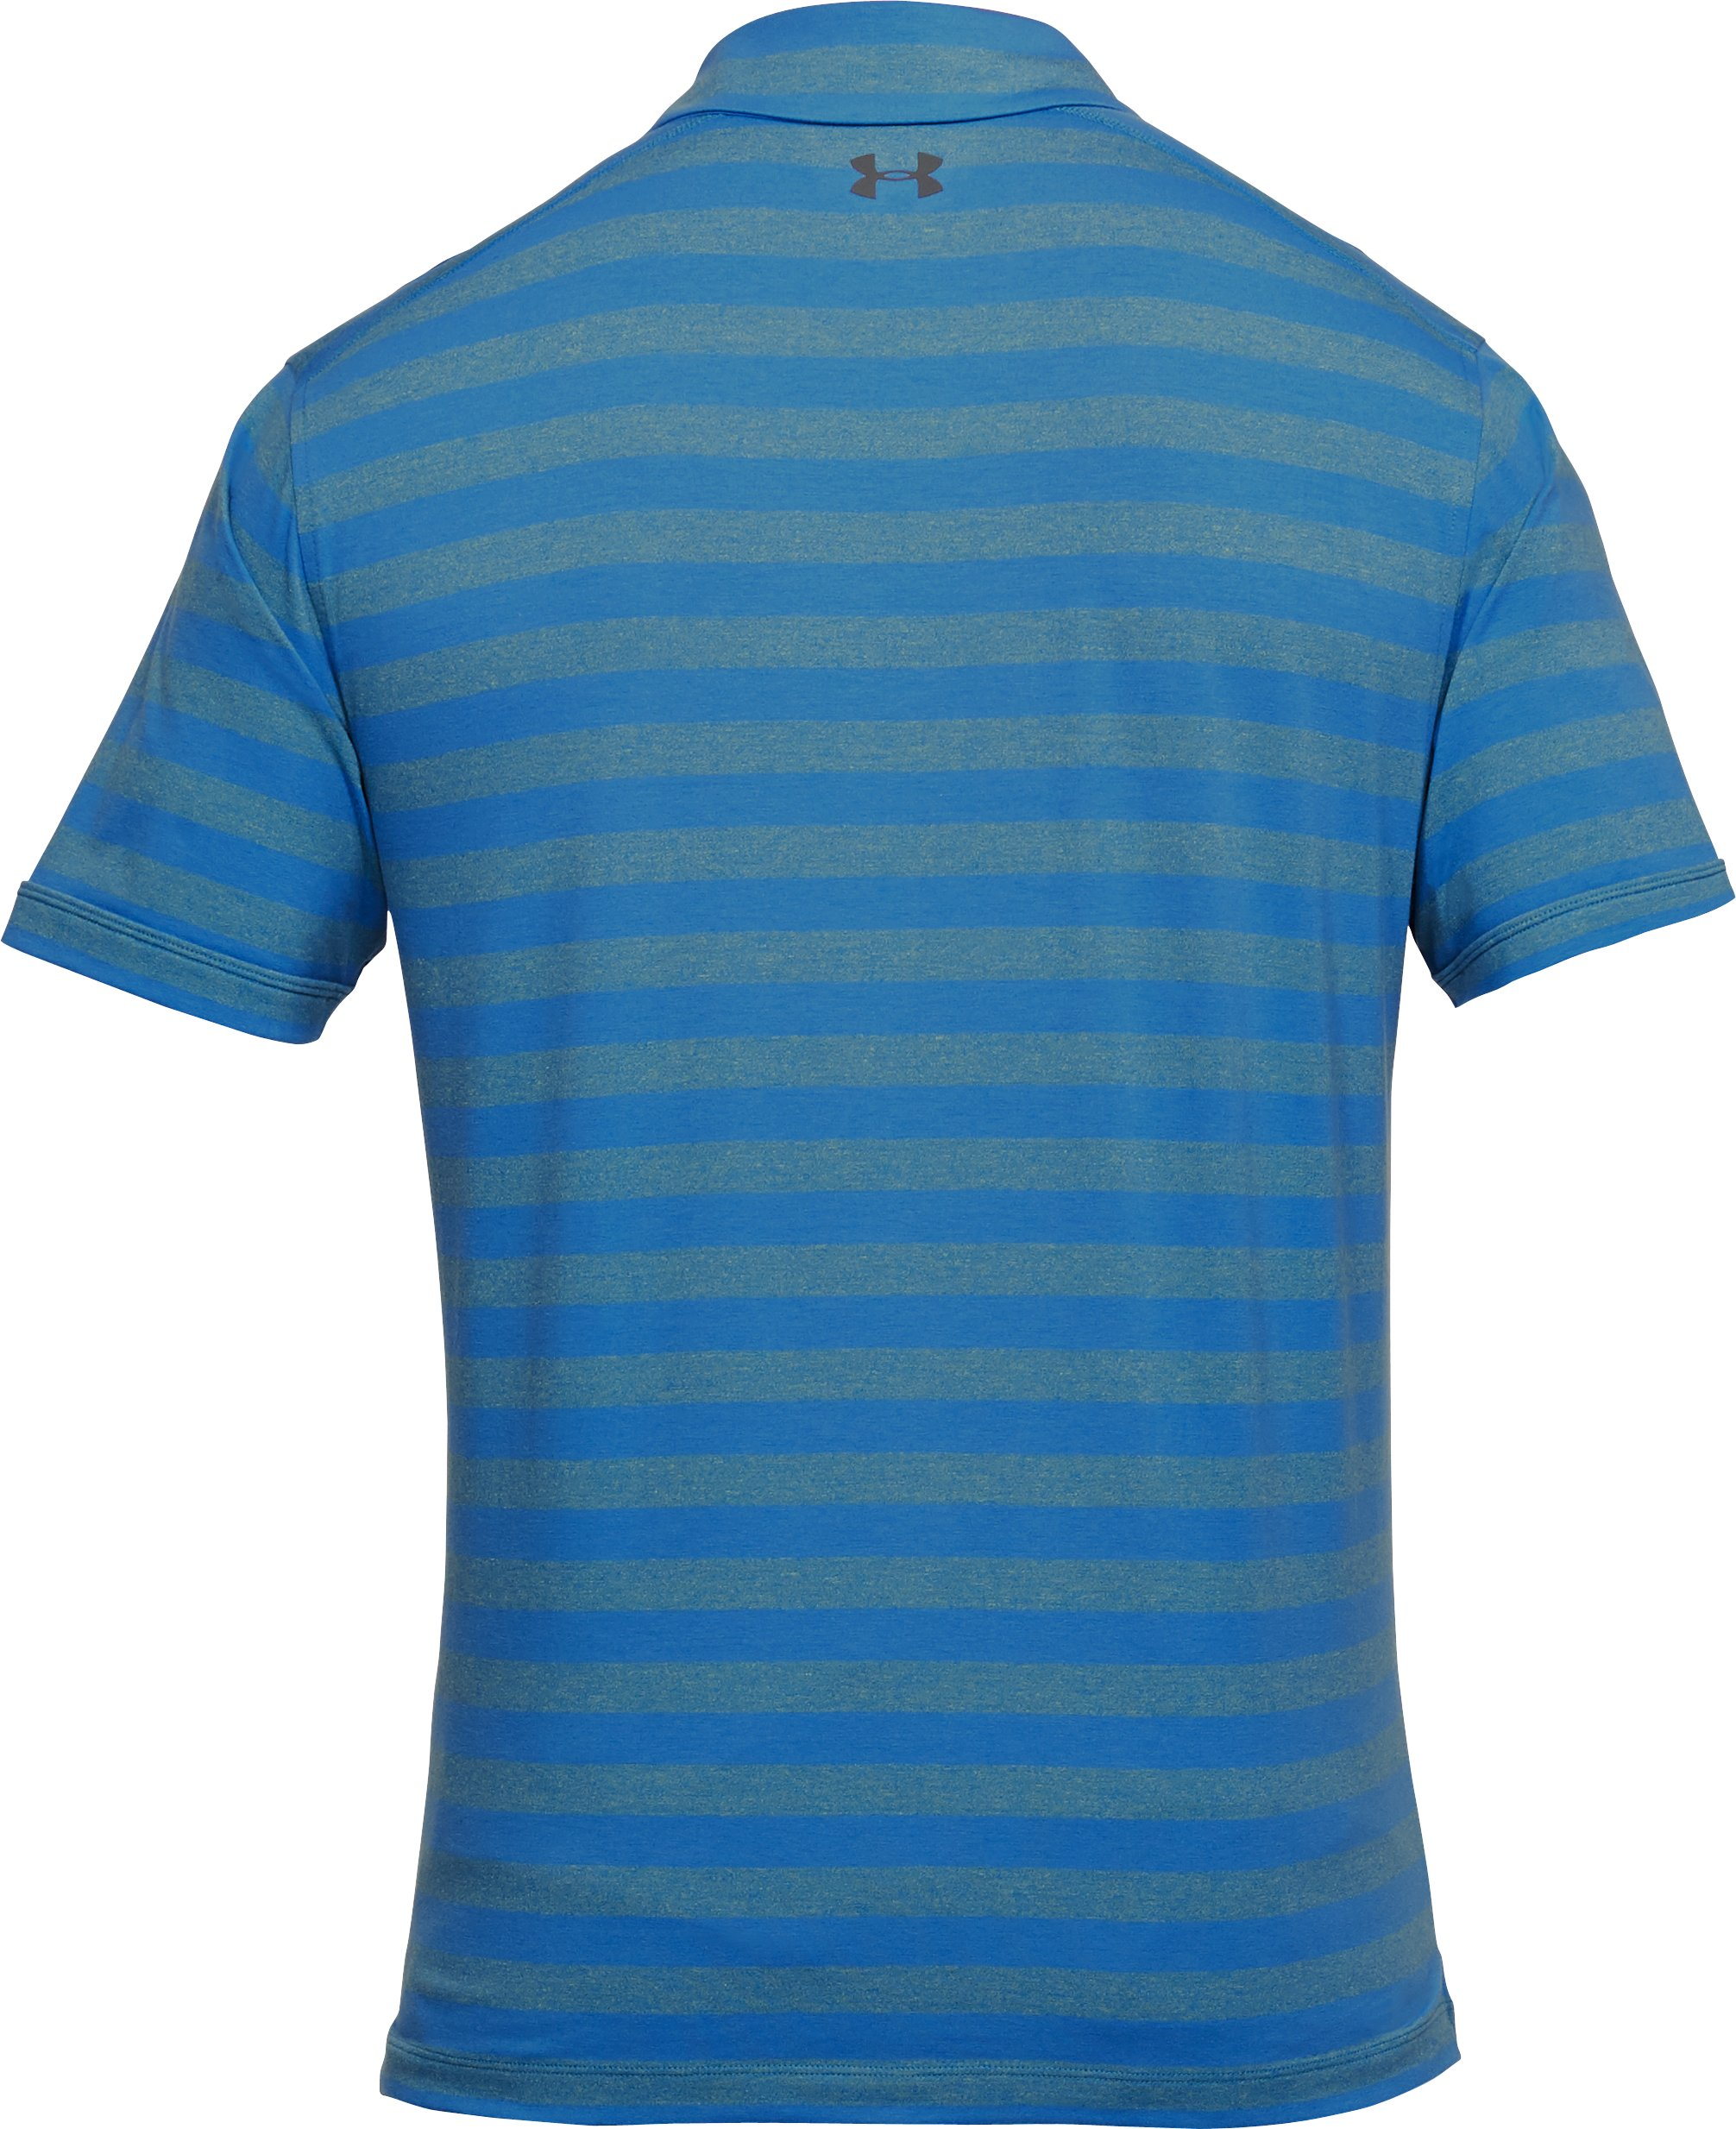 Men's Charged Cotton® Scramble Stripe Polo, Mediterranean,